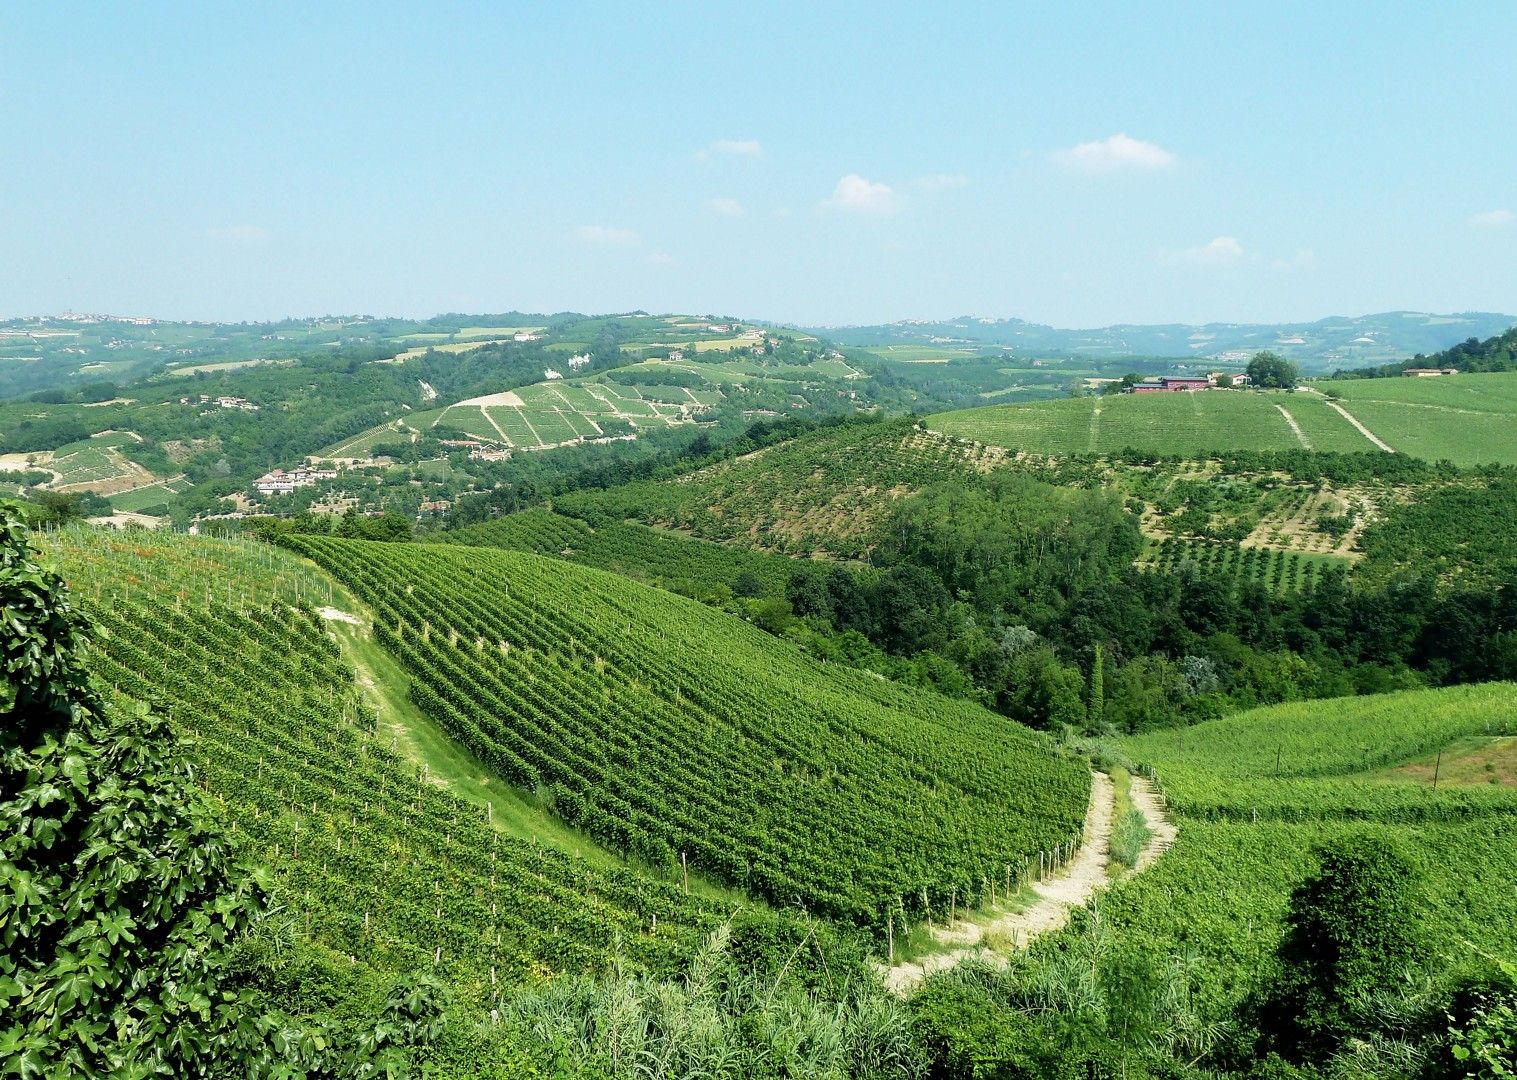 canale-to-barolo-cycling-holiday-in-italy-piemontes-vineyards-and-views.jpg - Italy - Piemonte's Vineyards and Views - Leisure Cycling